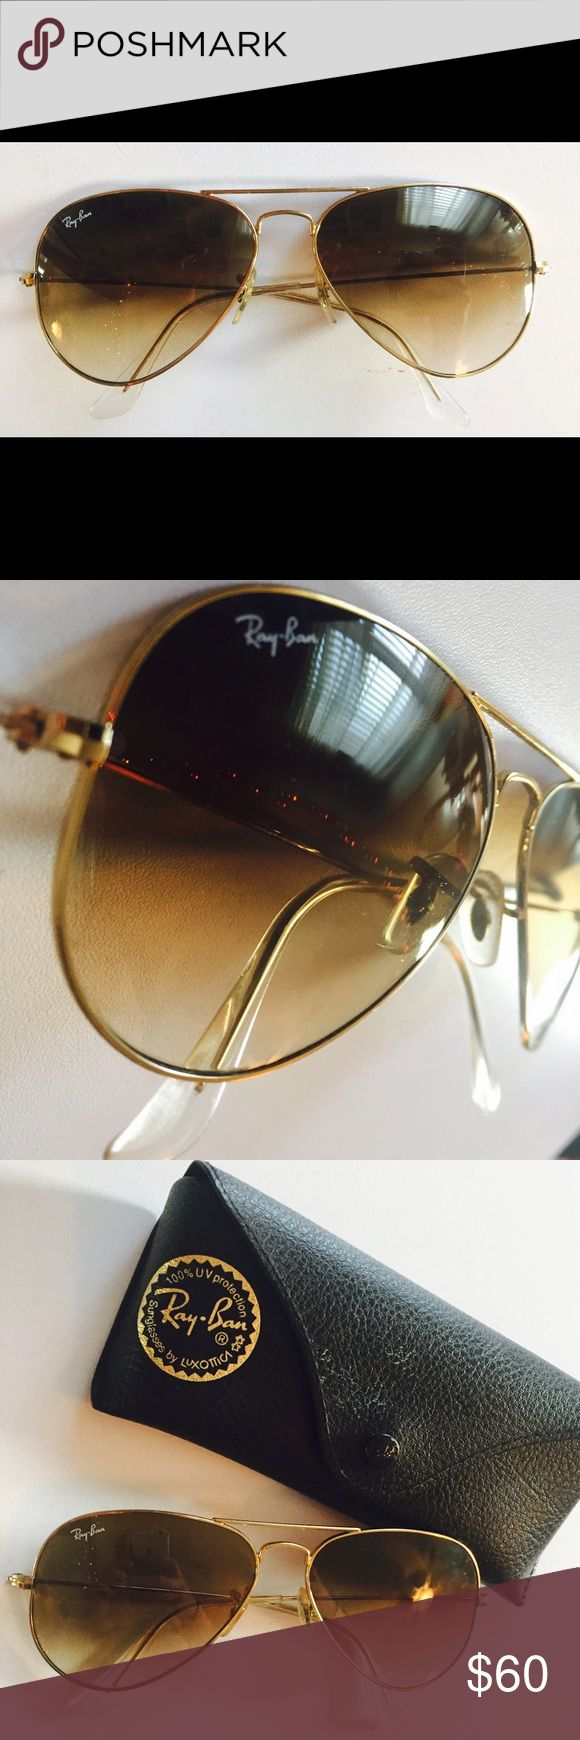 Ray-Ban RayBan Gold Aviator Sunglasses Aviators Barely worn! Basically brand new with very few if any scuffs or scratches. These RayBan Aviators are the slightly smaller size made for women, but they look great on anyone! Comes with the case ✨ Ray-Ban Accessories Sunglasses